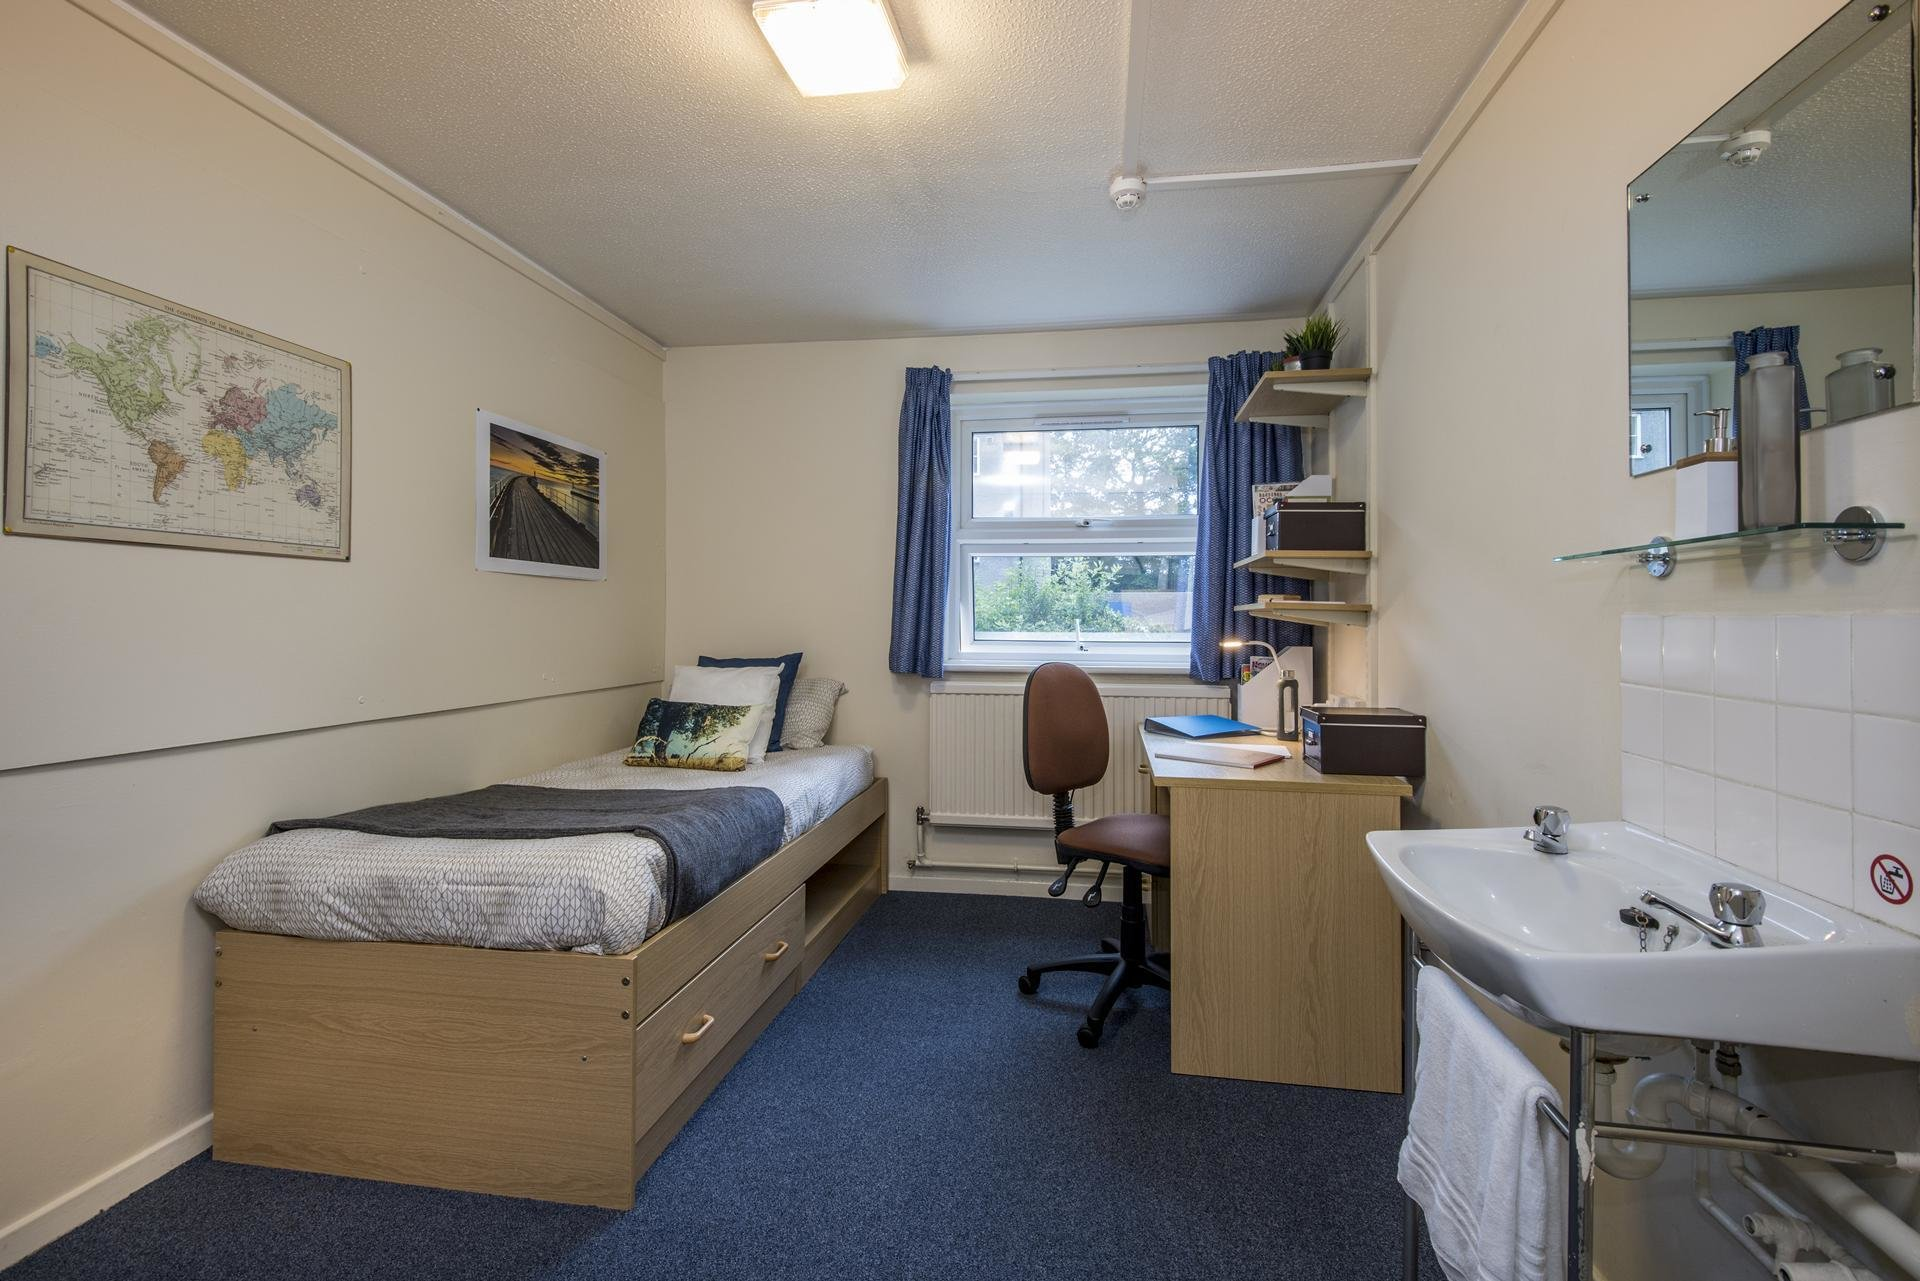 Best Bencraft Halls Of Residence University Of Southampton With Pictures